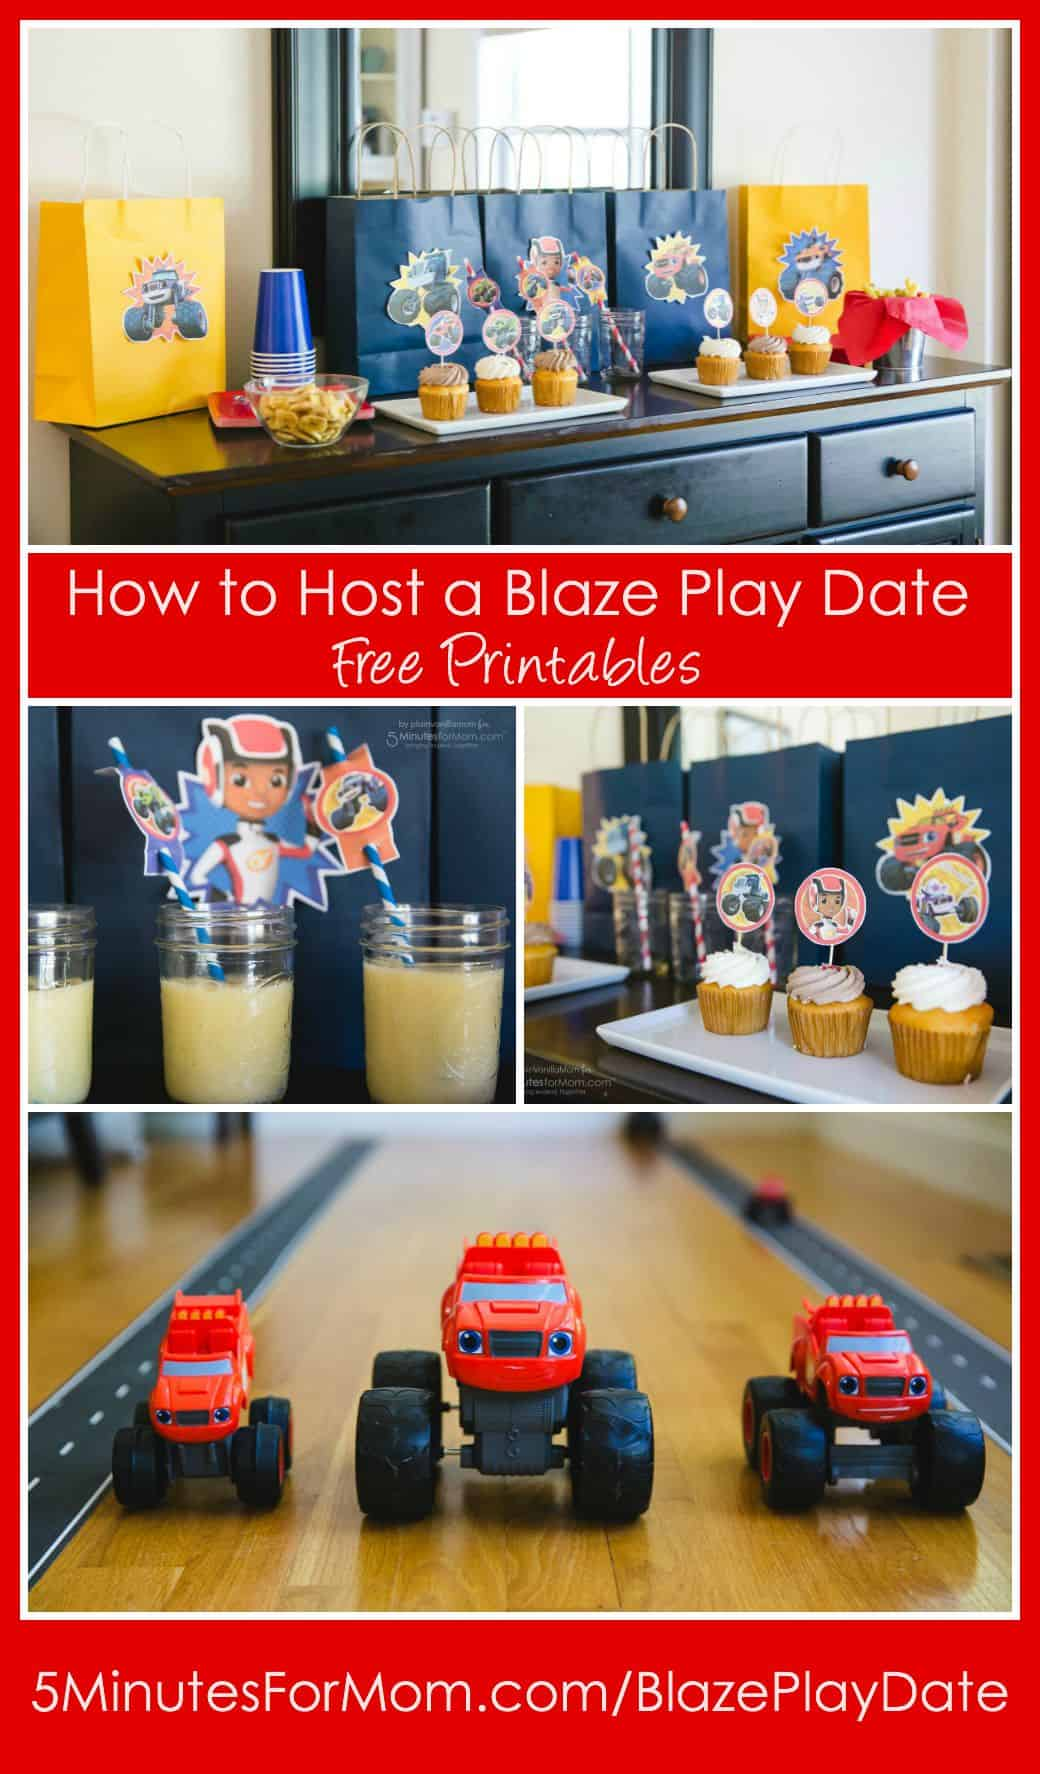 How to Host a Blaze Play Date with Free Printables